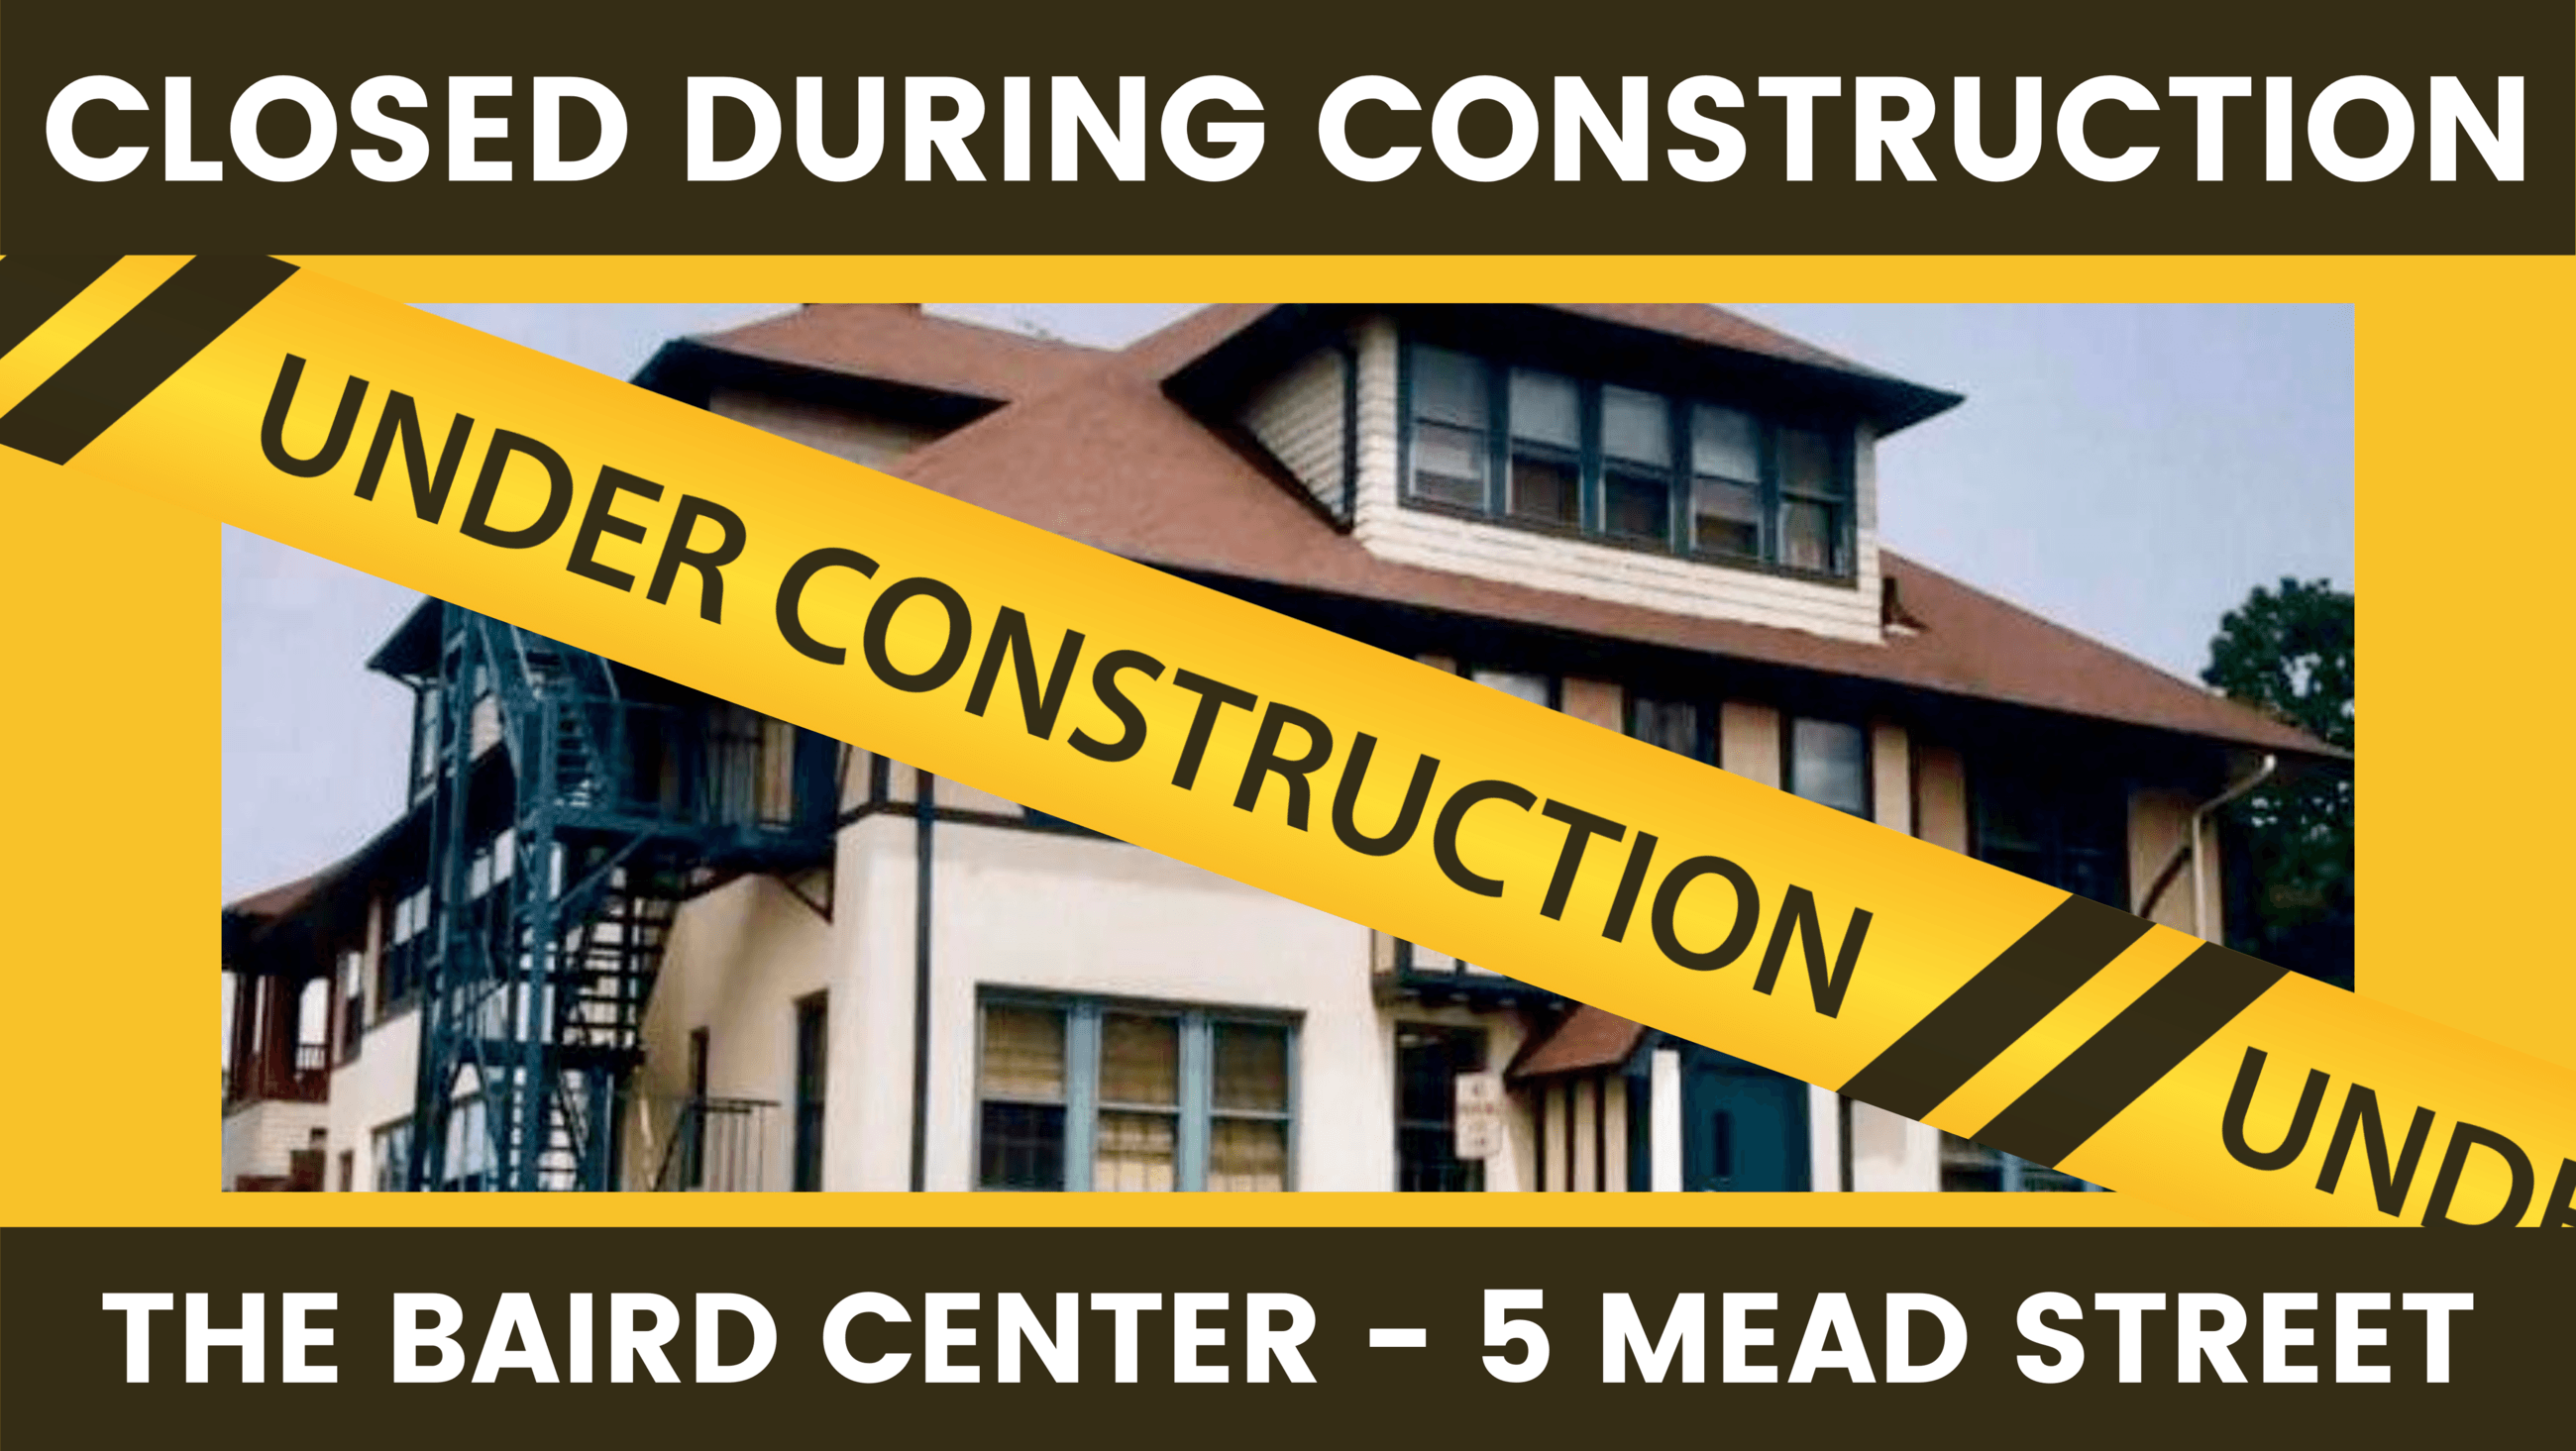 The Baird Center is Closed for Construction